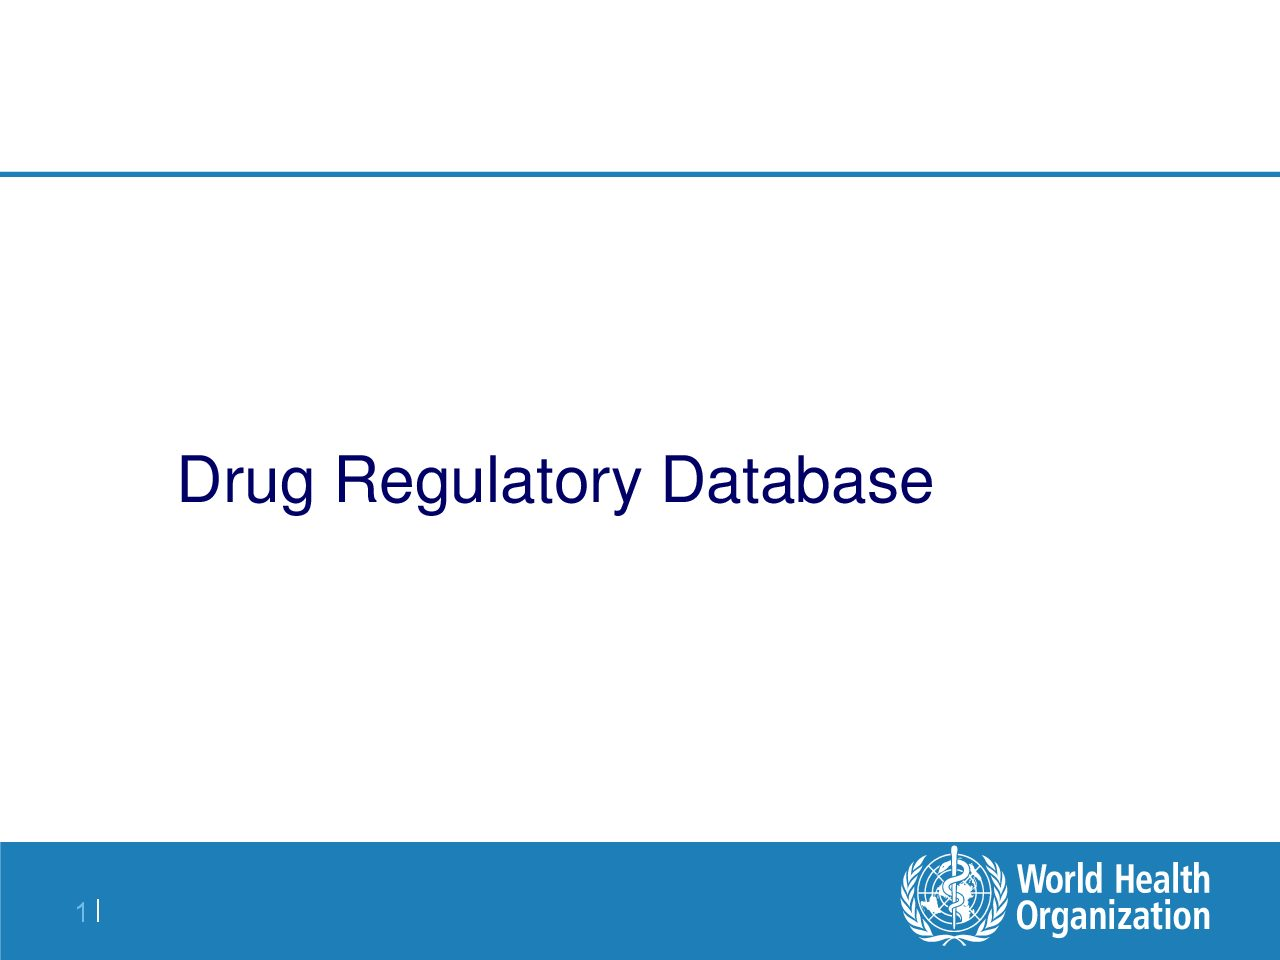 Drug regulatory database.